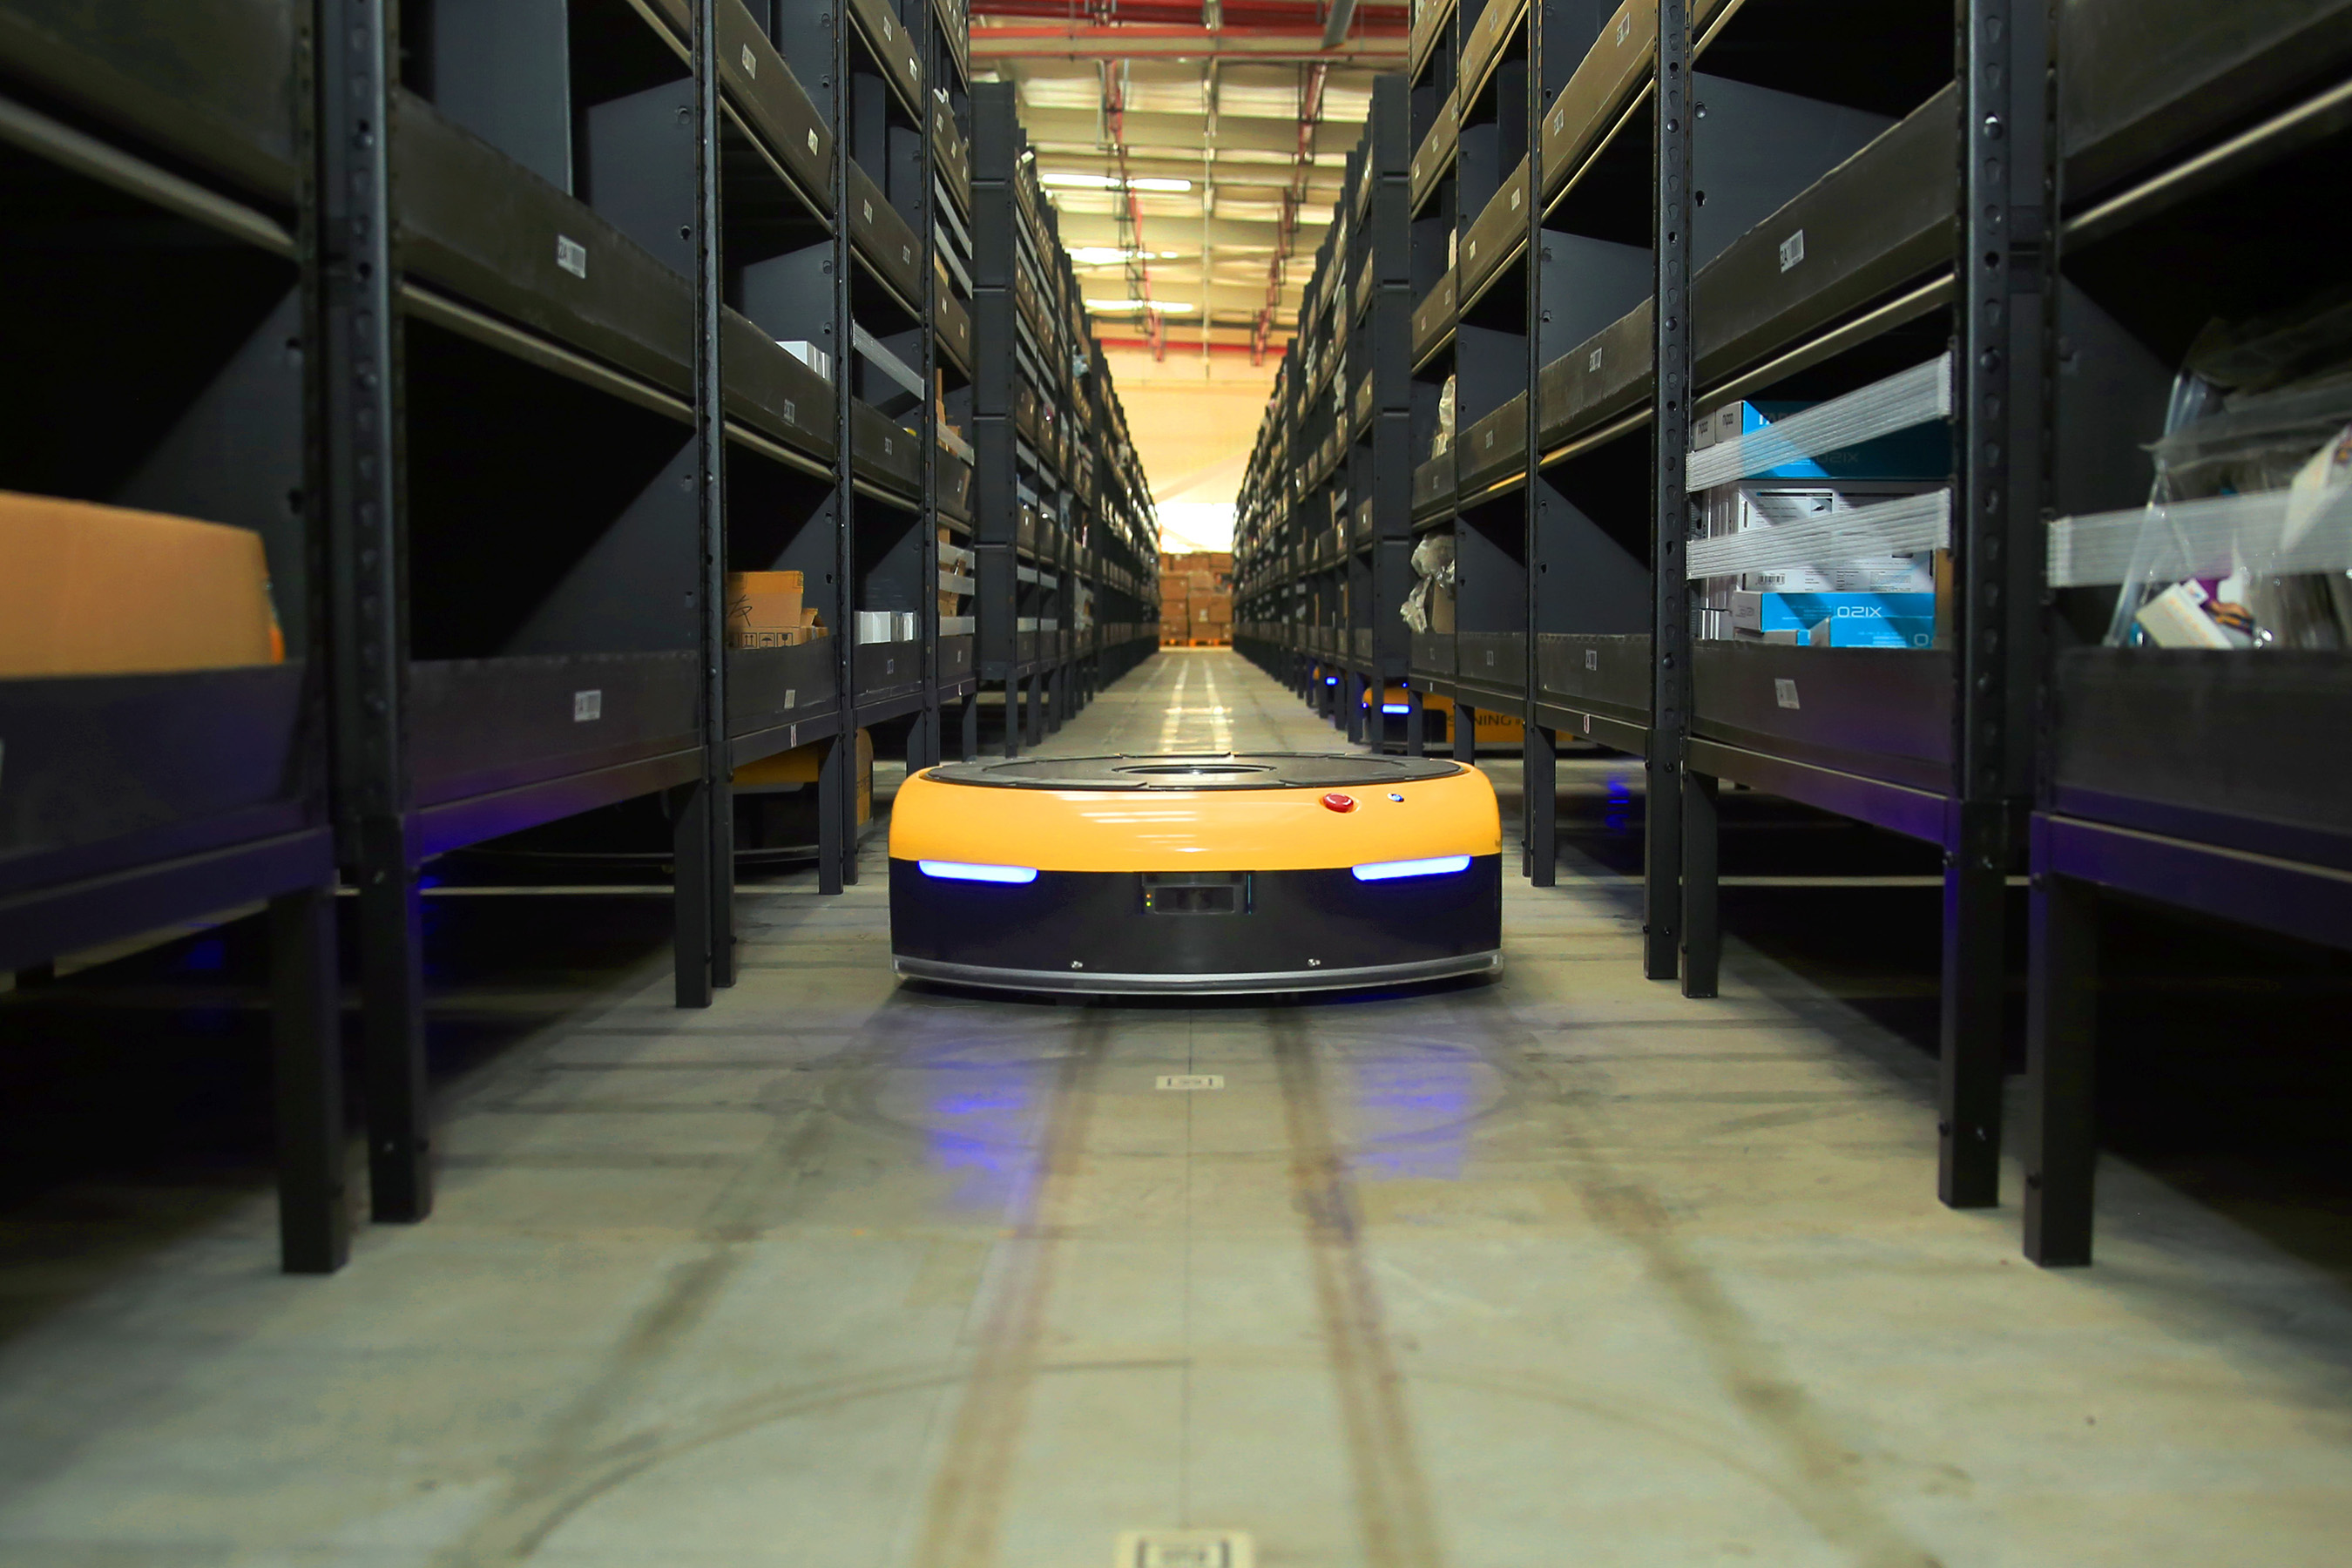 The AGV robots could accurately find each shelf through the guidance system based on QR code identification.